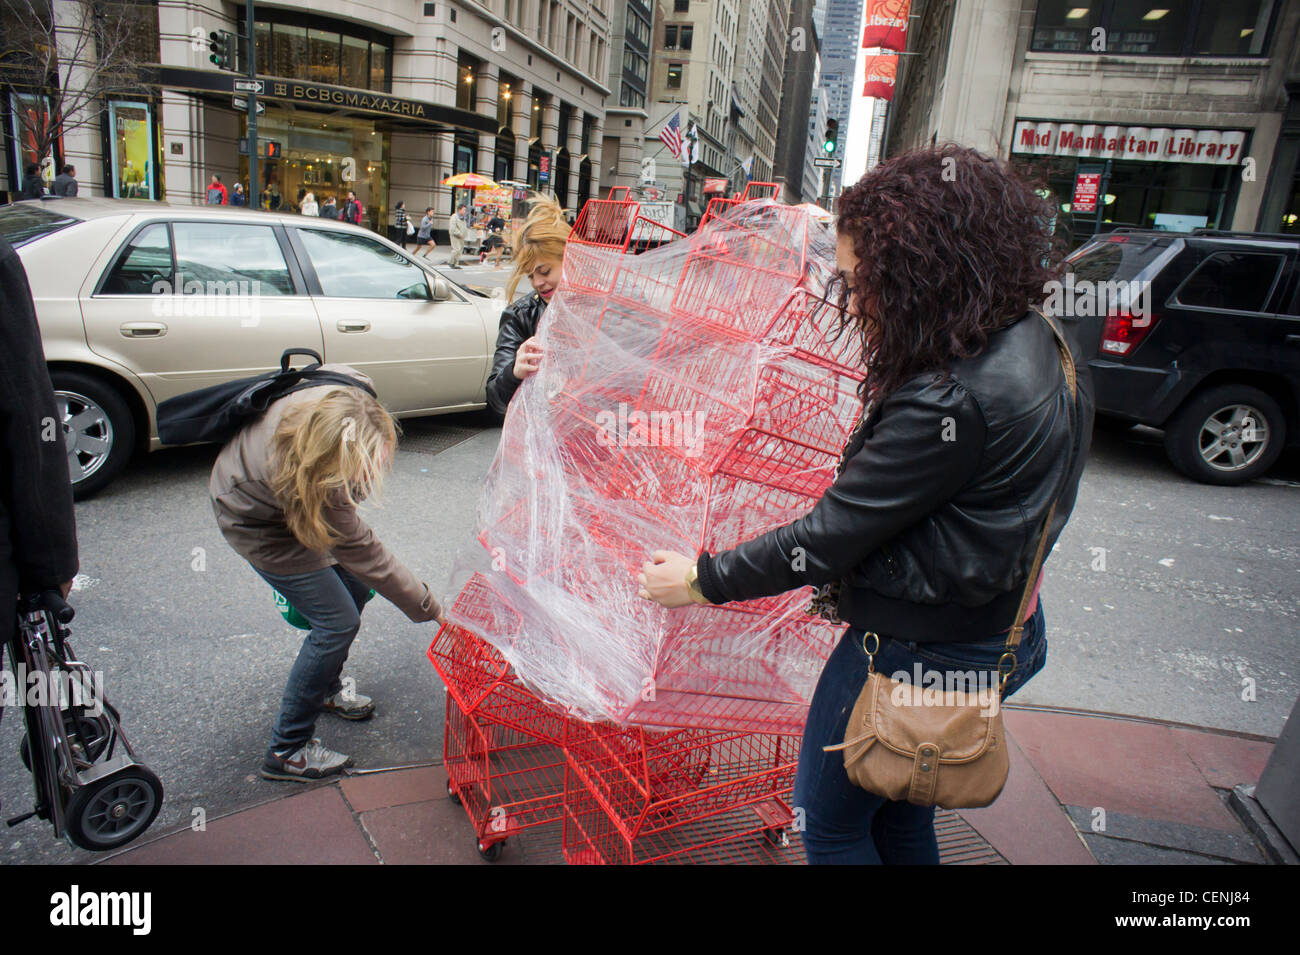 Women attempt to maneuver a cart of baskets through the city streets Stock Photo